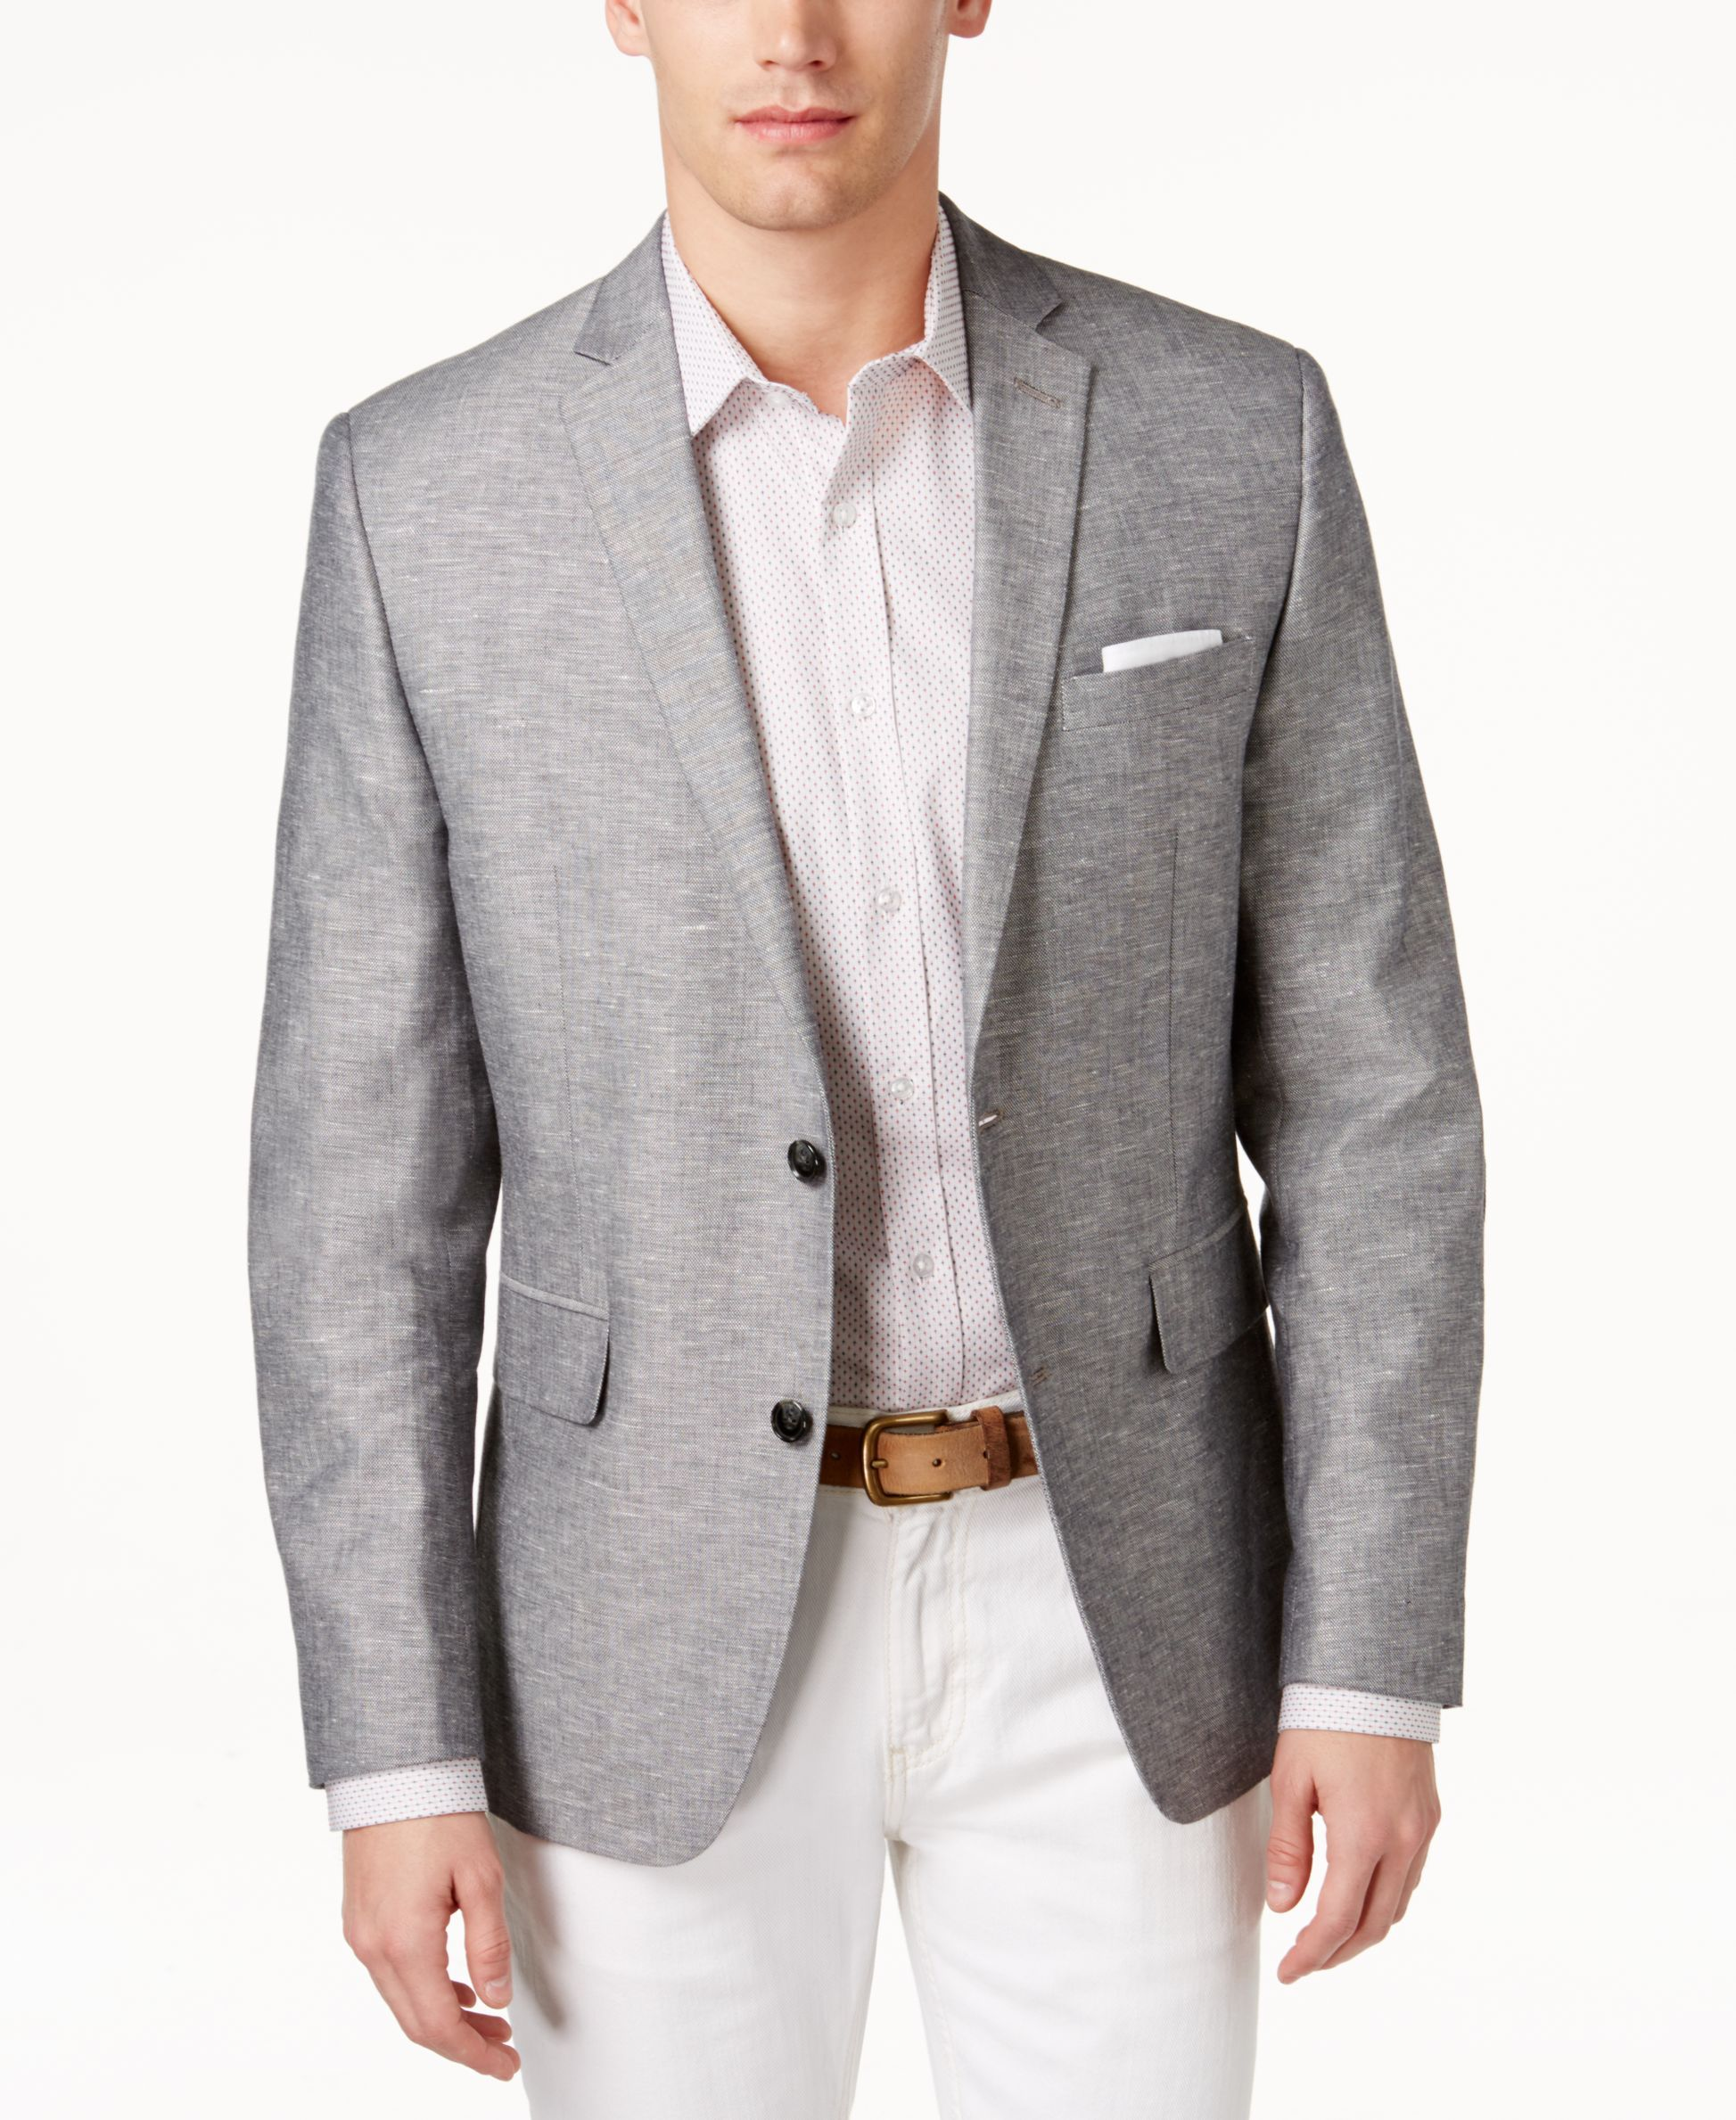 Bar Iii Men's Slim-Fit Double-Face Light Grey Sport Coat, Only at